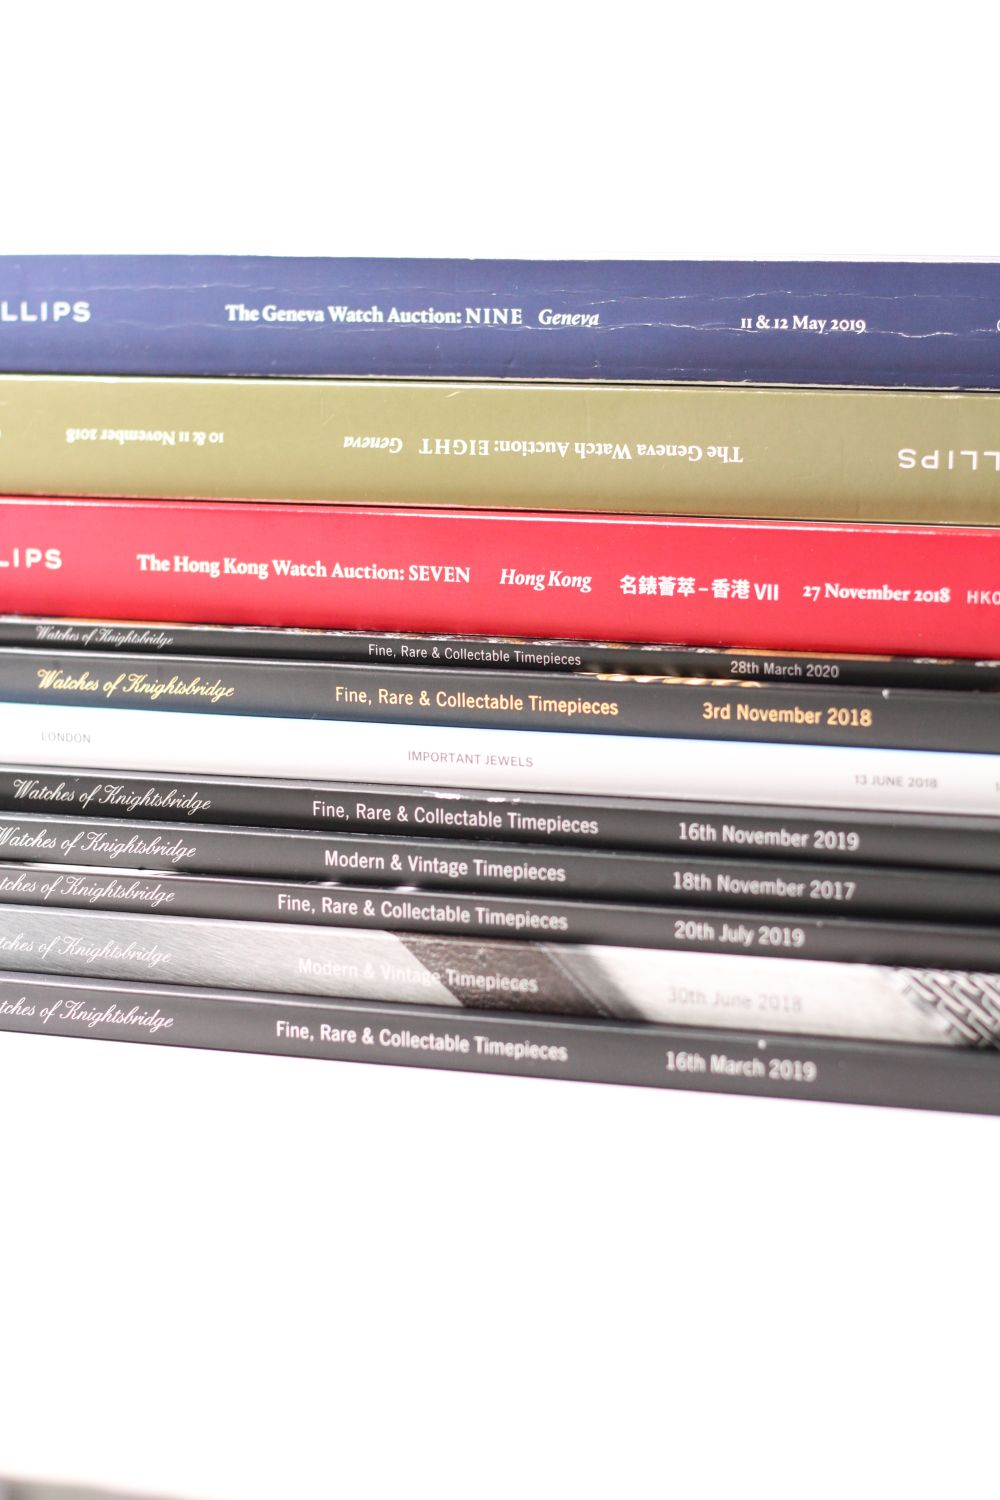 A collection of watch catalogues from Philips (3), Watches of Knightsbridge (7) and Christies (1)